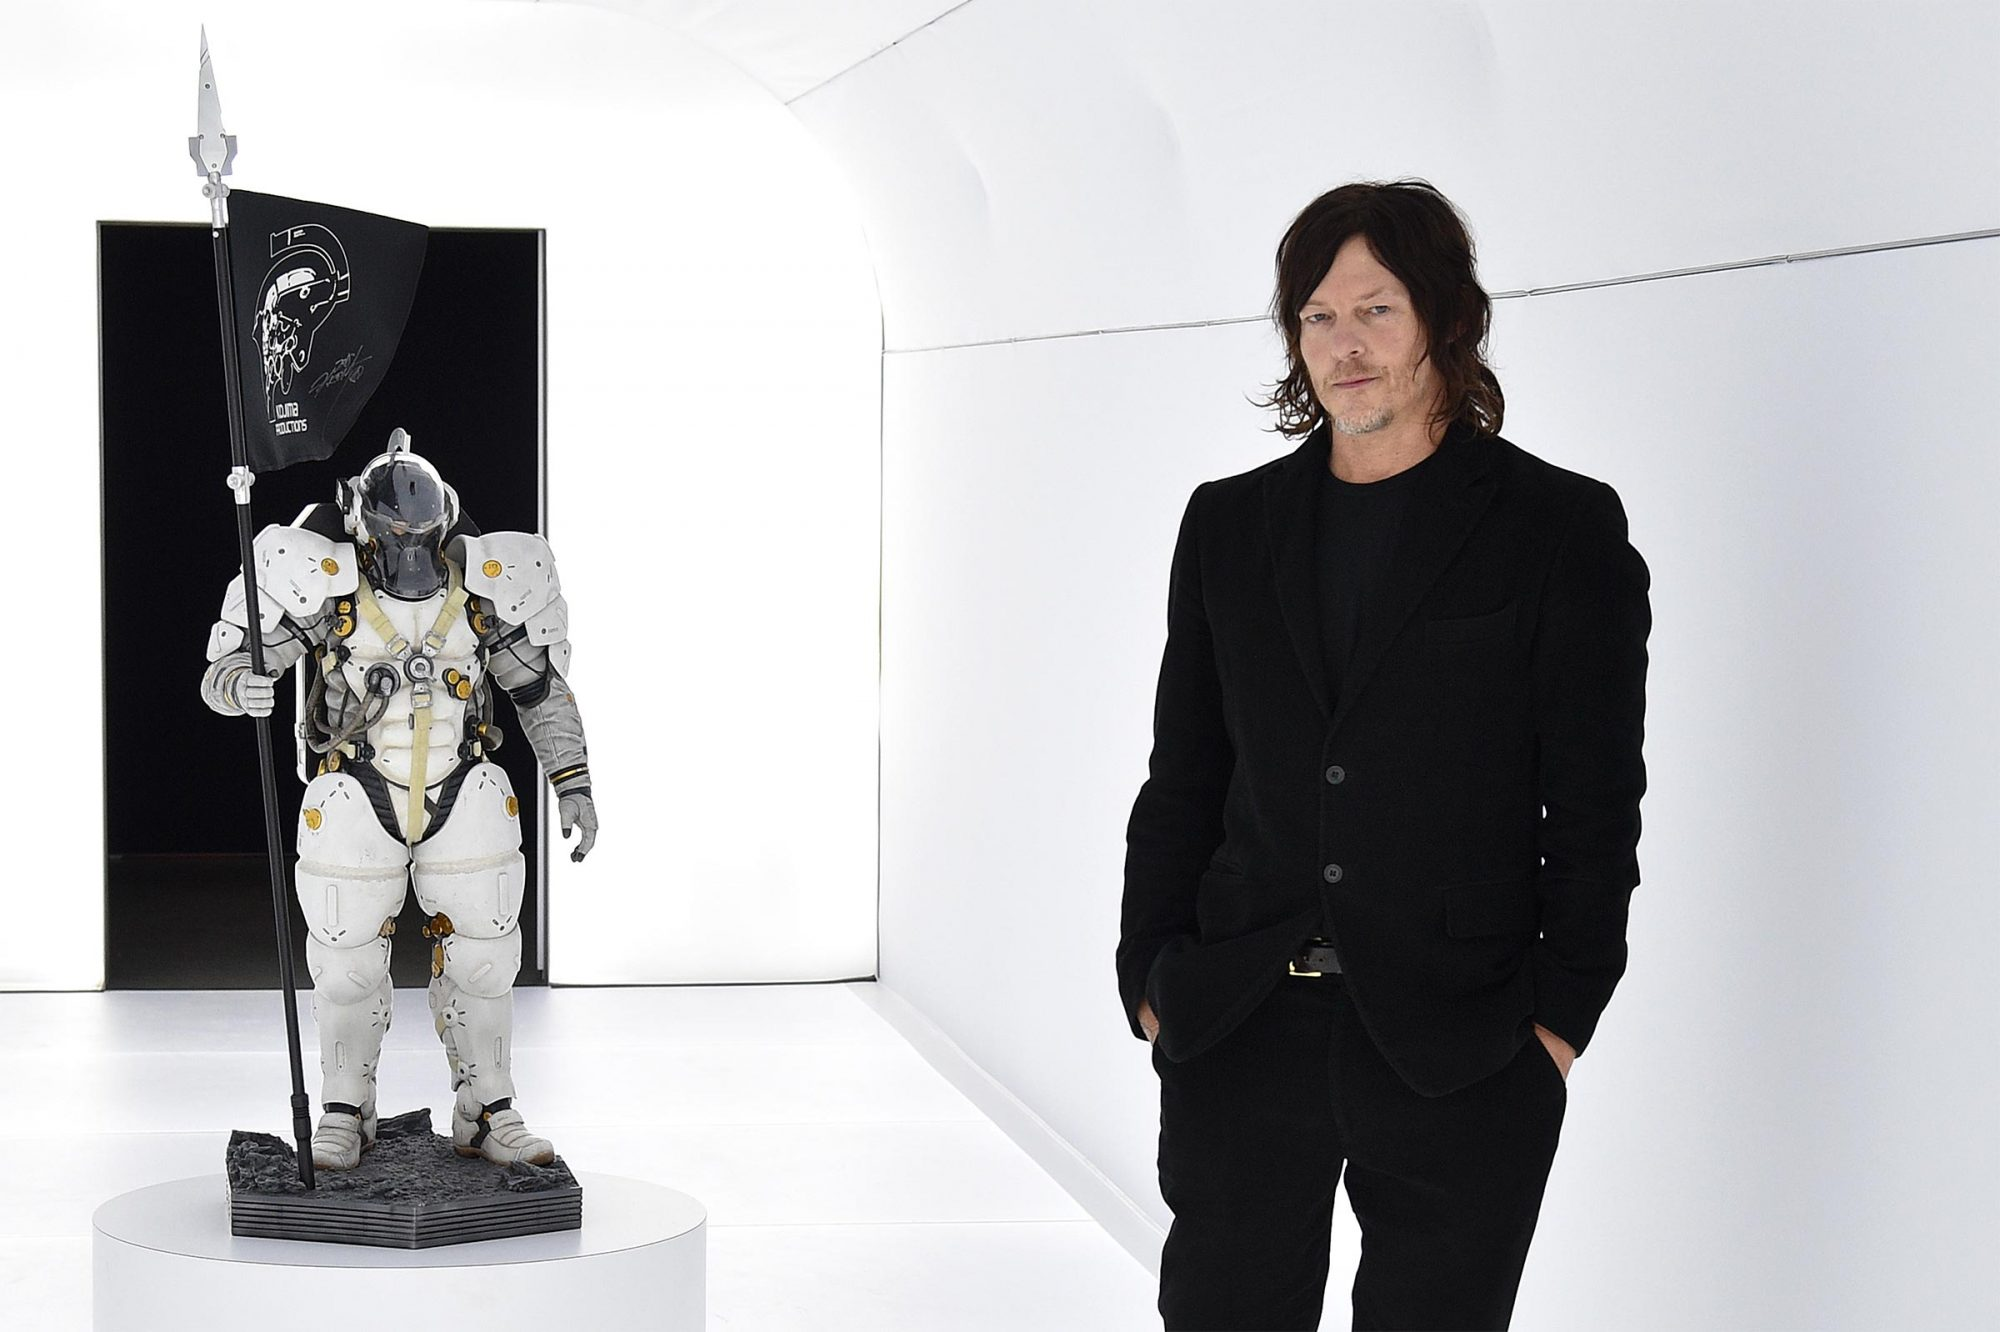 Death Stranding With Norman Reedus Mads Mikkelsen Bridges Videogames Cinema Ew Com In order to compile the ranking, top level players, tournament organizers, commentators. norman reedus mads mikkelsen